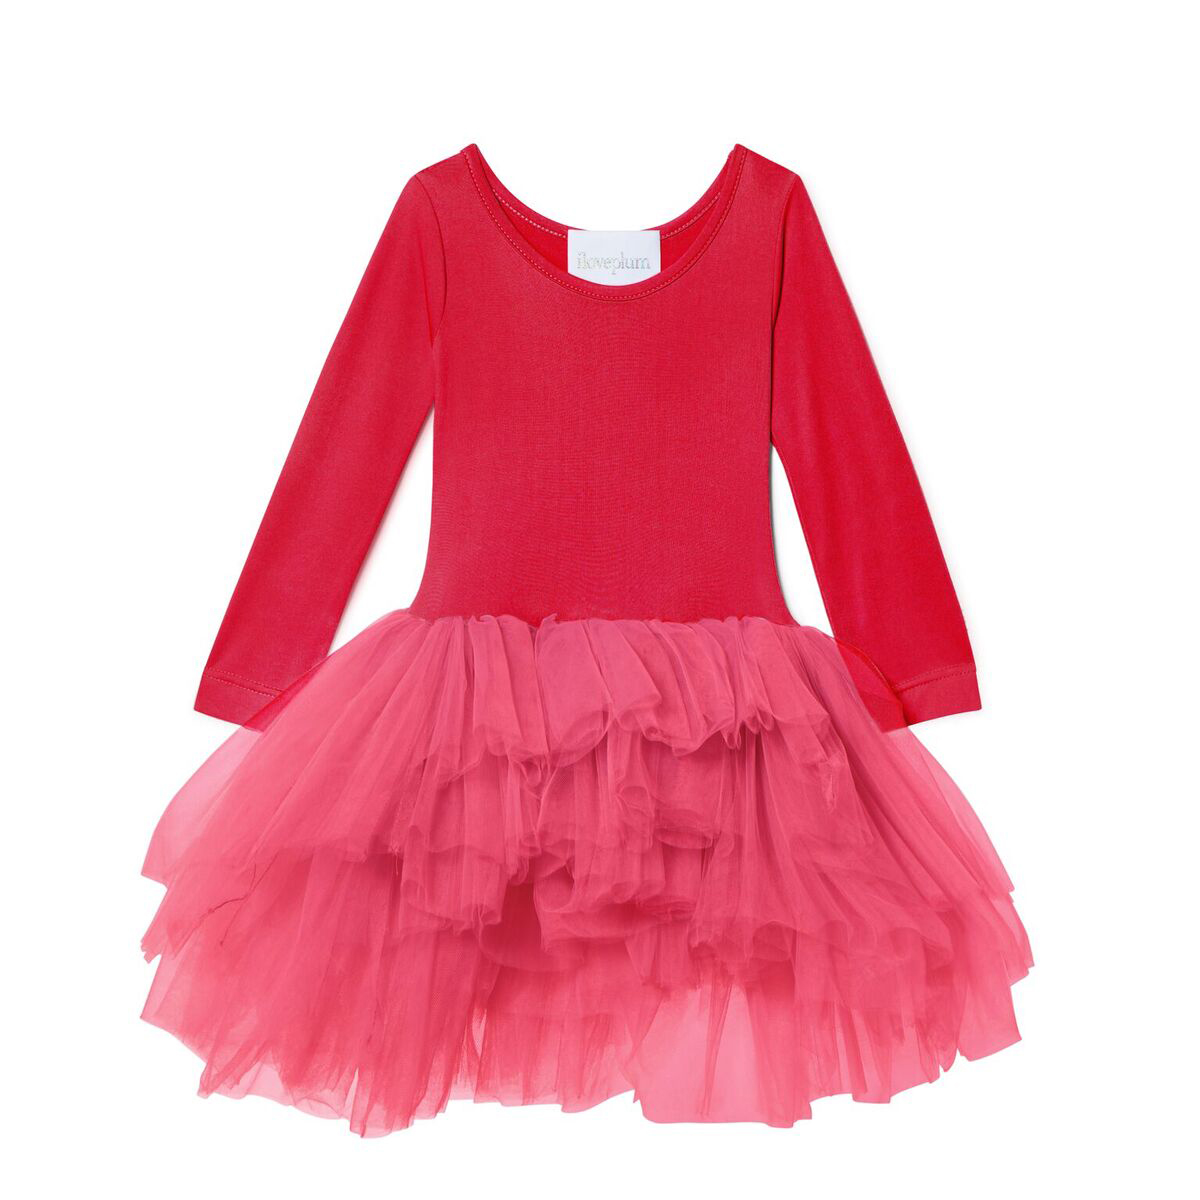 ILovePlum Long Sleeve Tutu Dress in Camilla Red